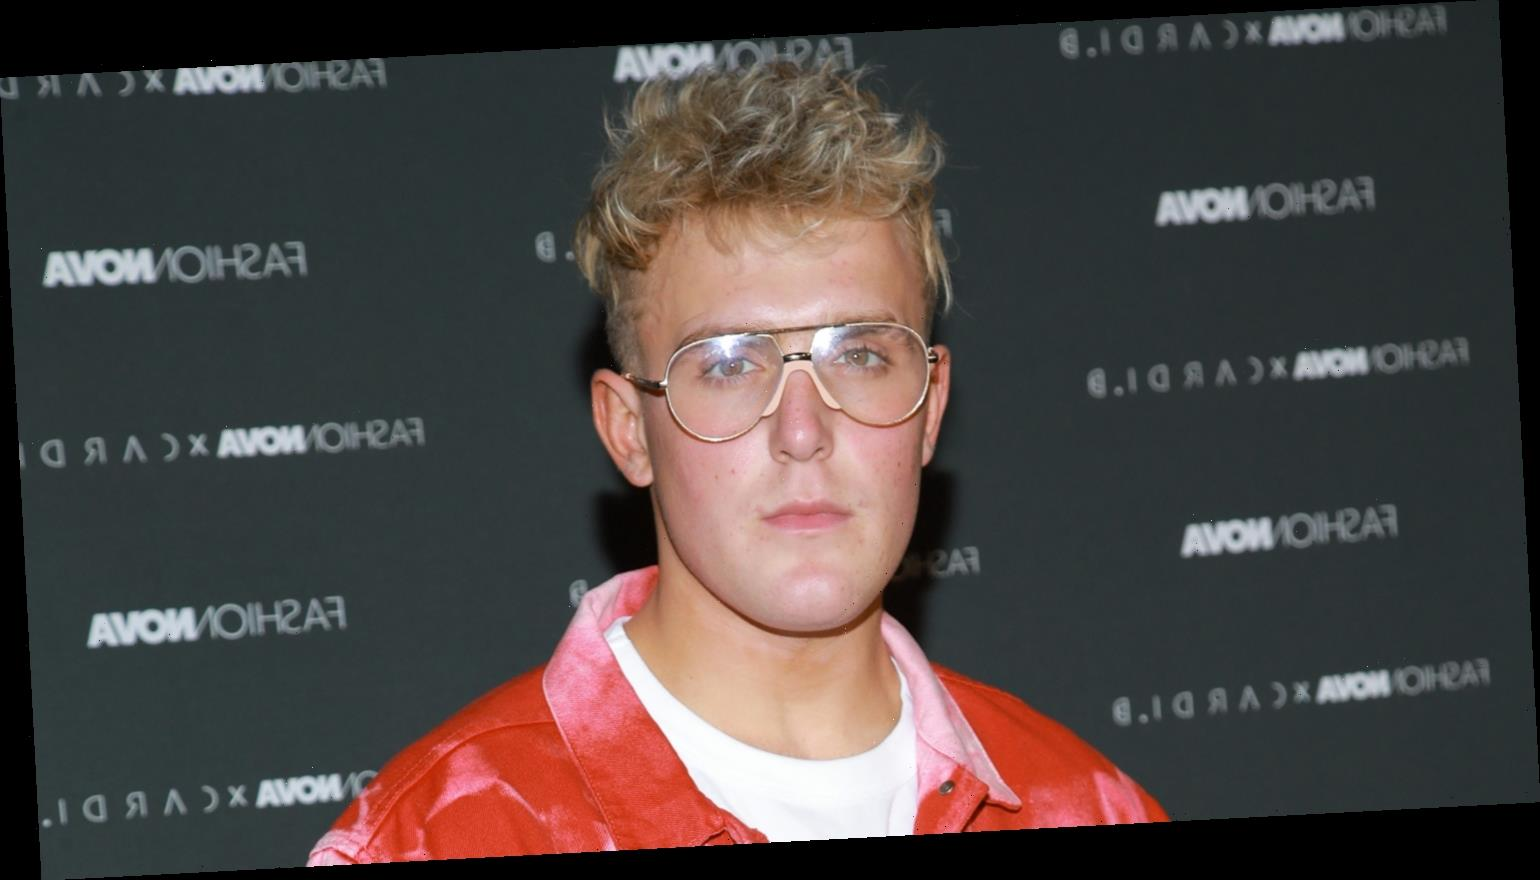 Jake Paul Addresses Partying Amid the Pandemic, Says He's Not 'Gonna Sit Around & Not Live My Life'